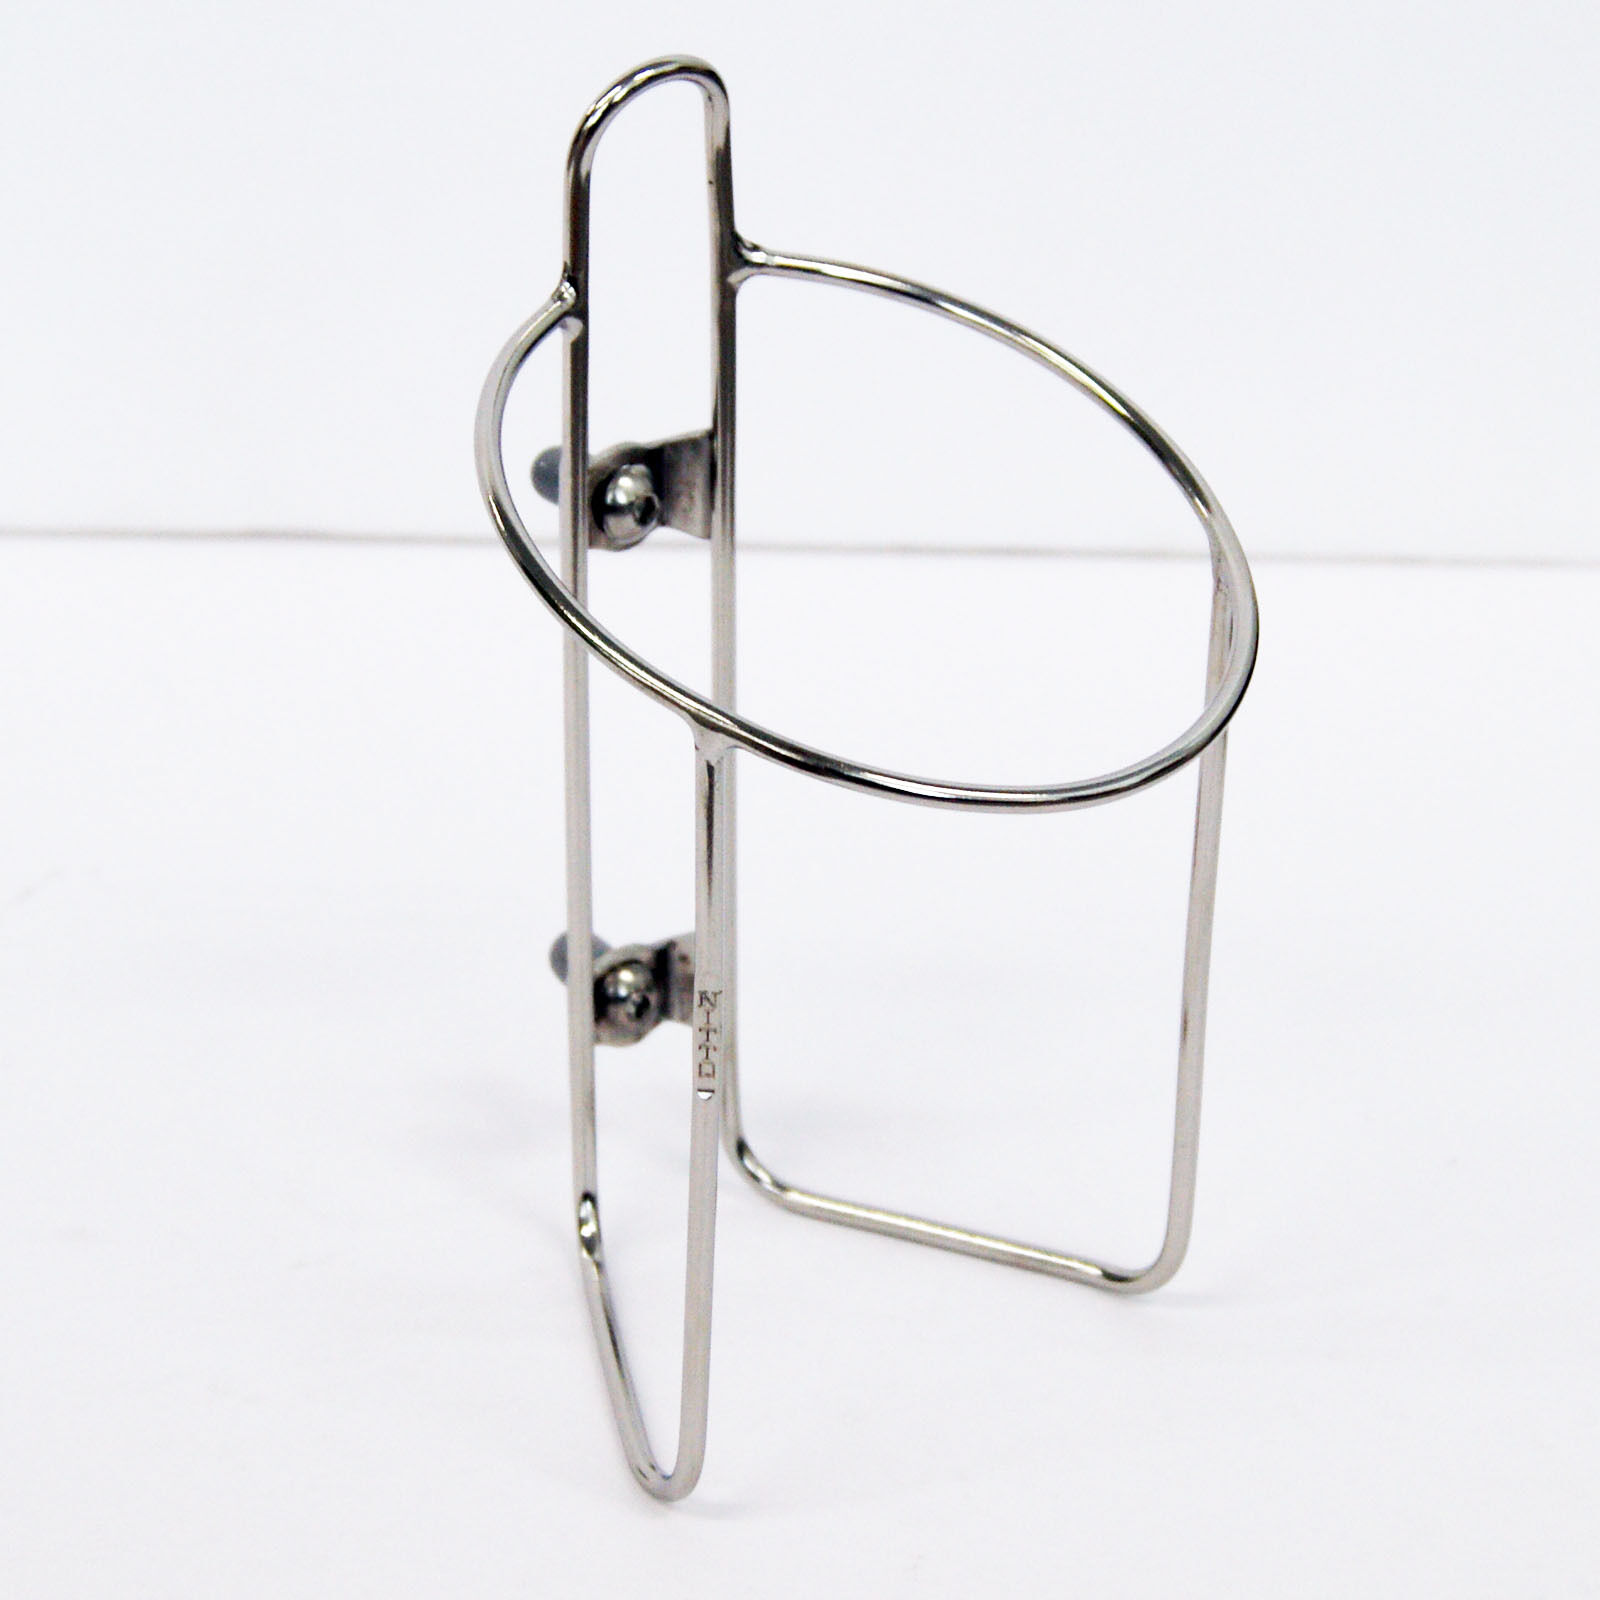 NITTO Bottle Cage T for Touring Bicycle 850635